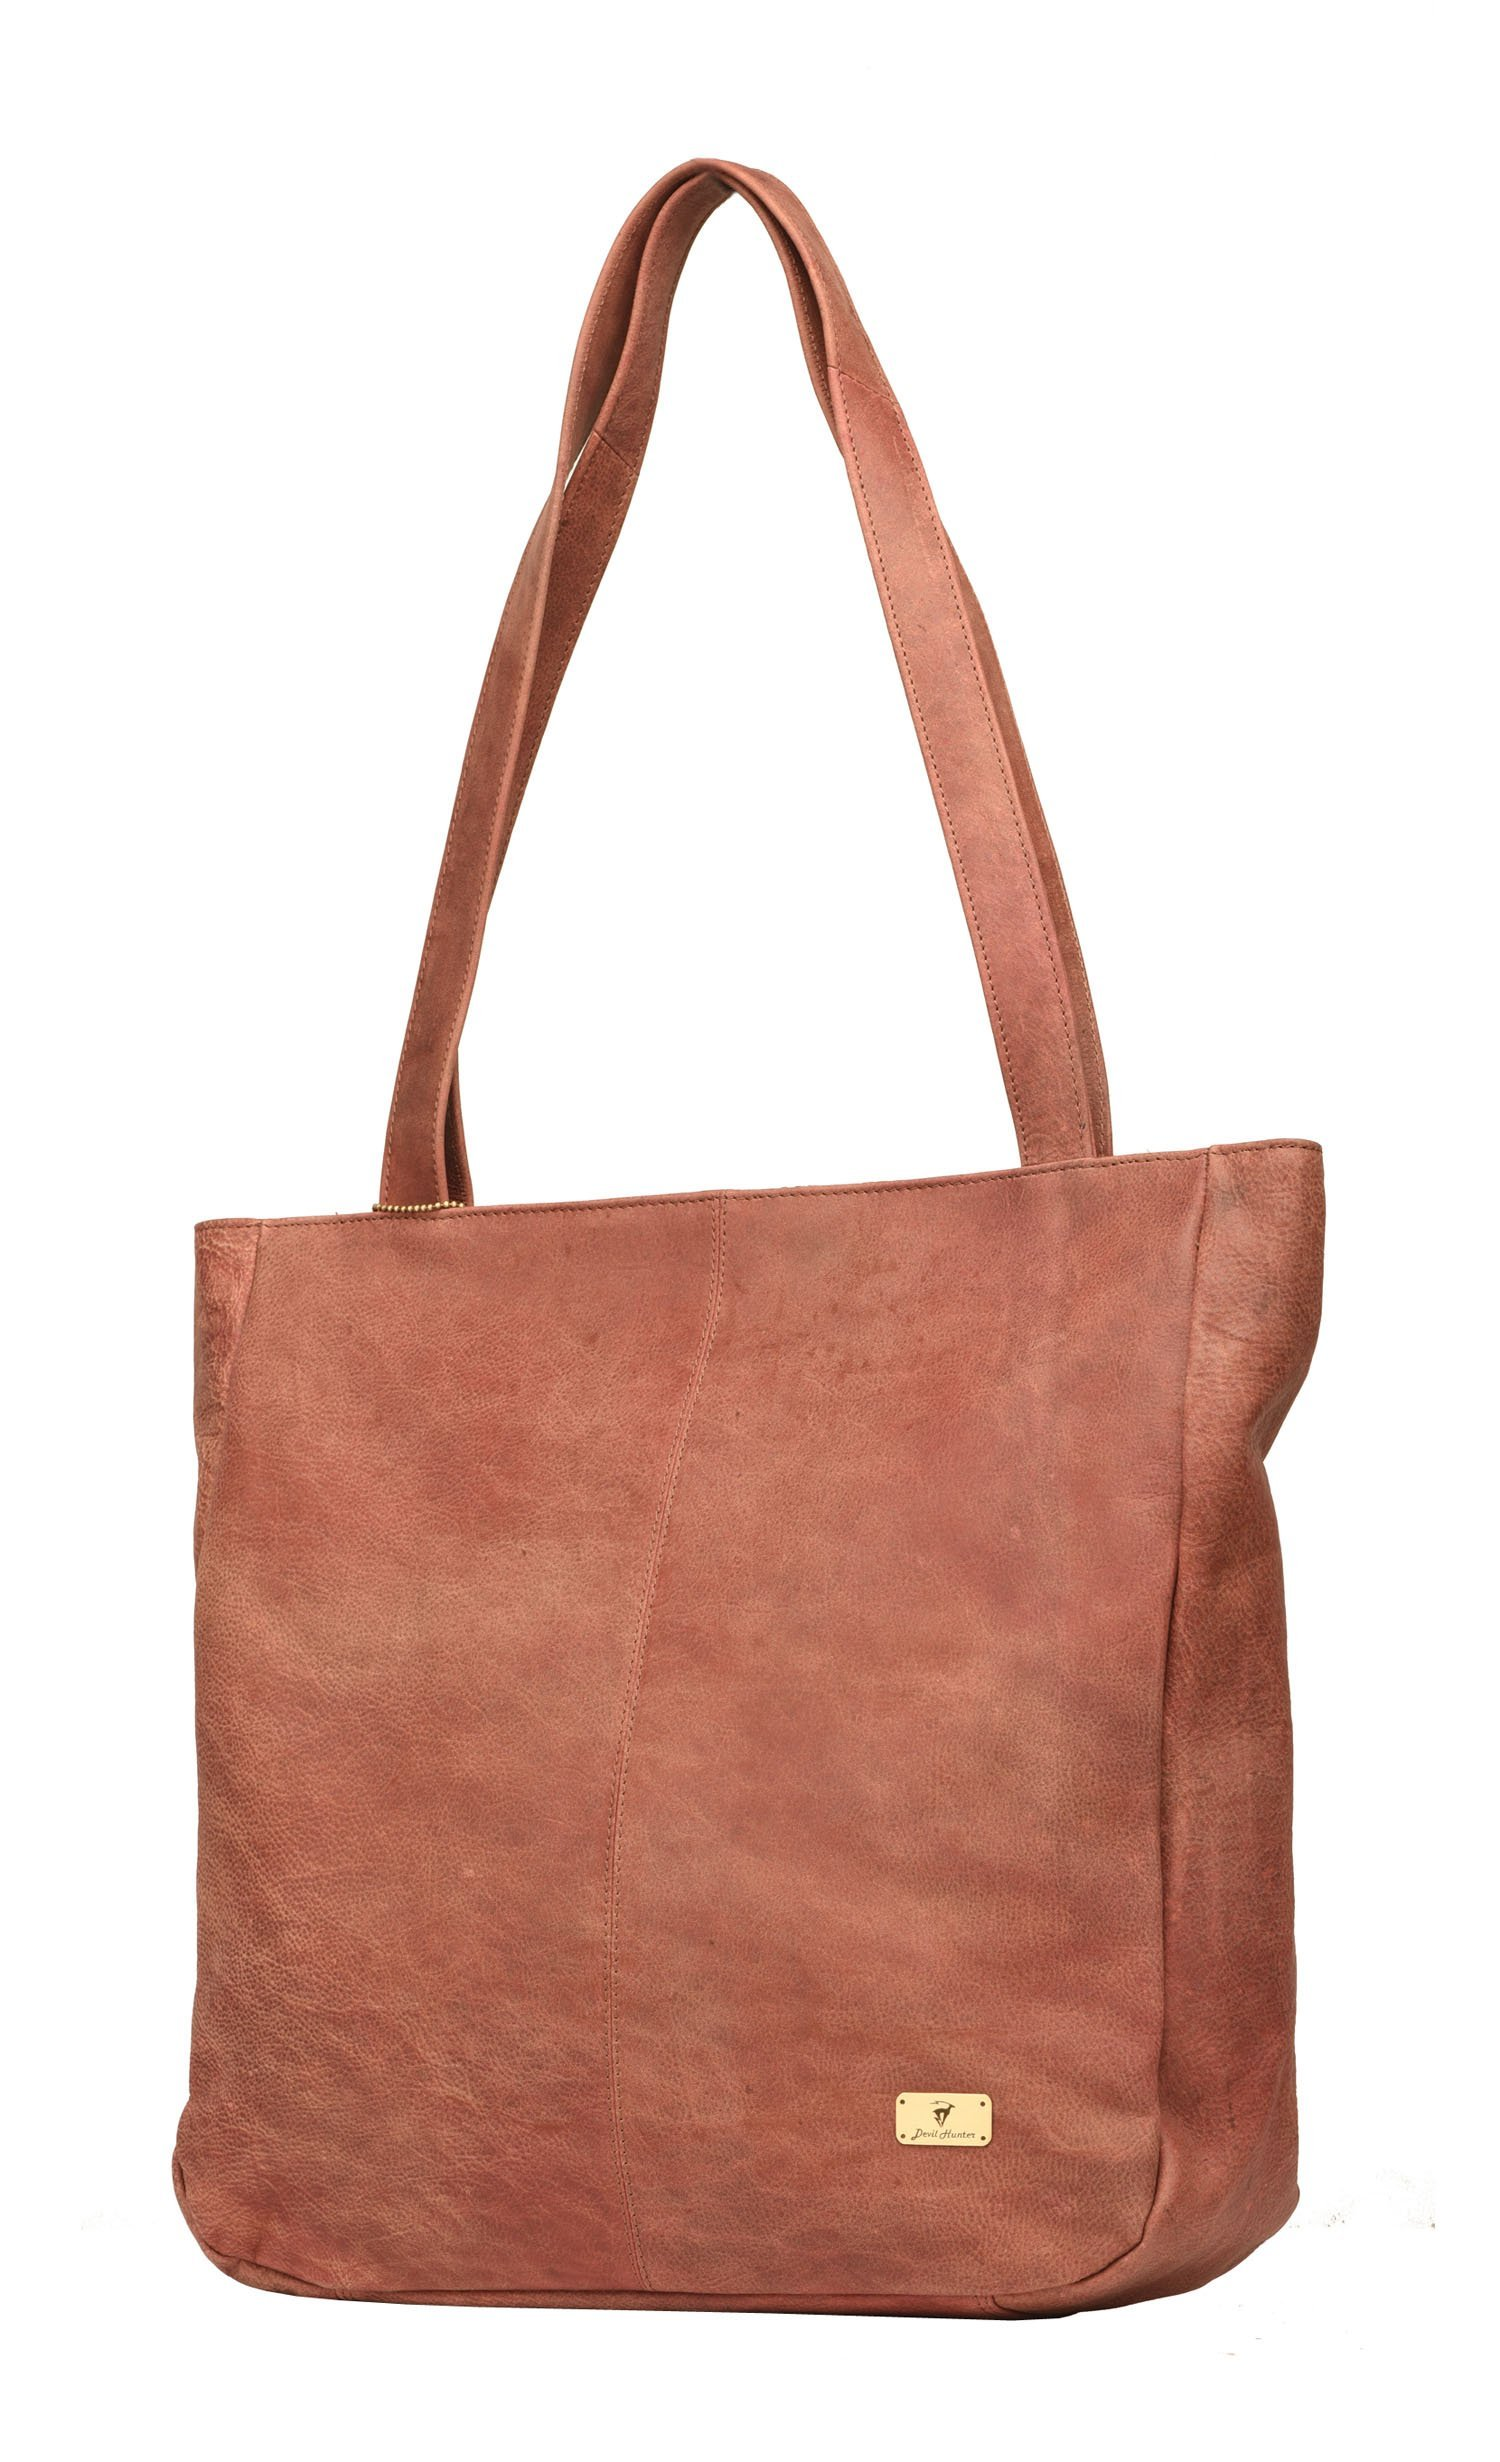 DH Amber genuine buffalo leather shopper bag in vintage style for Women